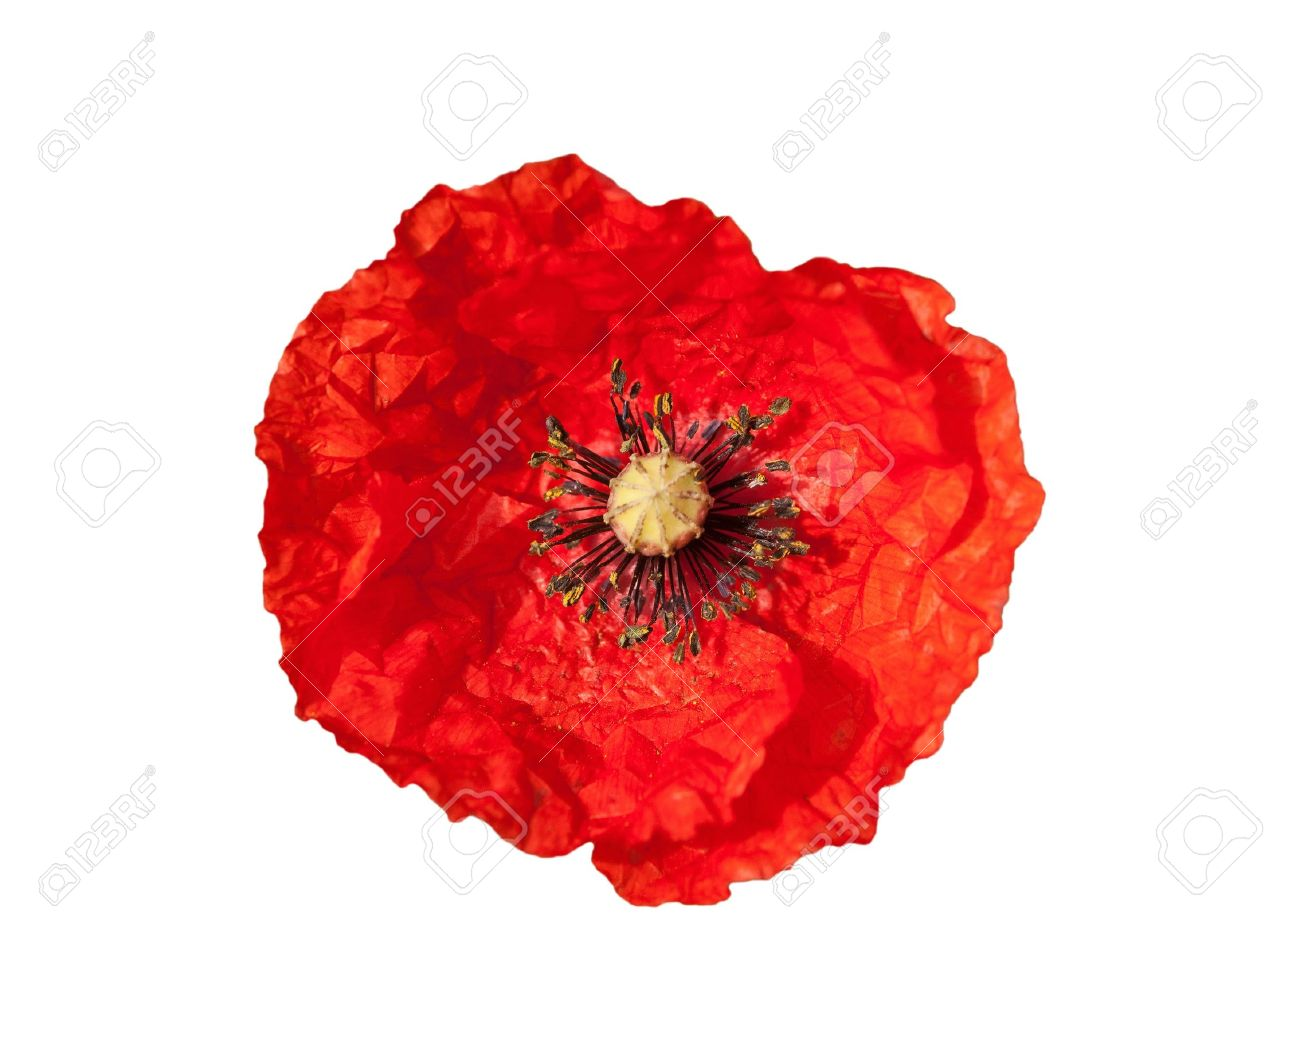 Red poppy flower isolated on a white background Stock Photo - 9375366